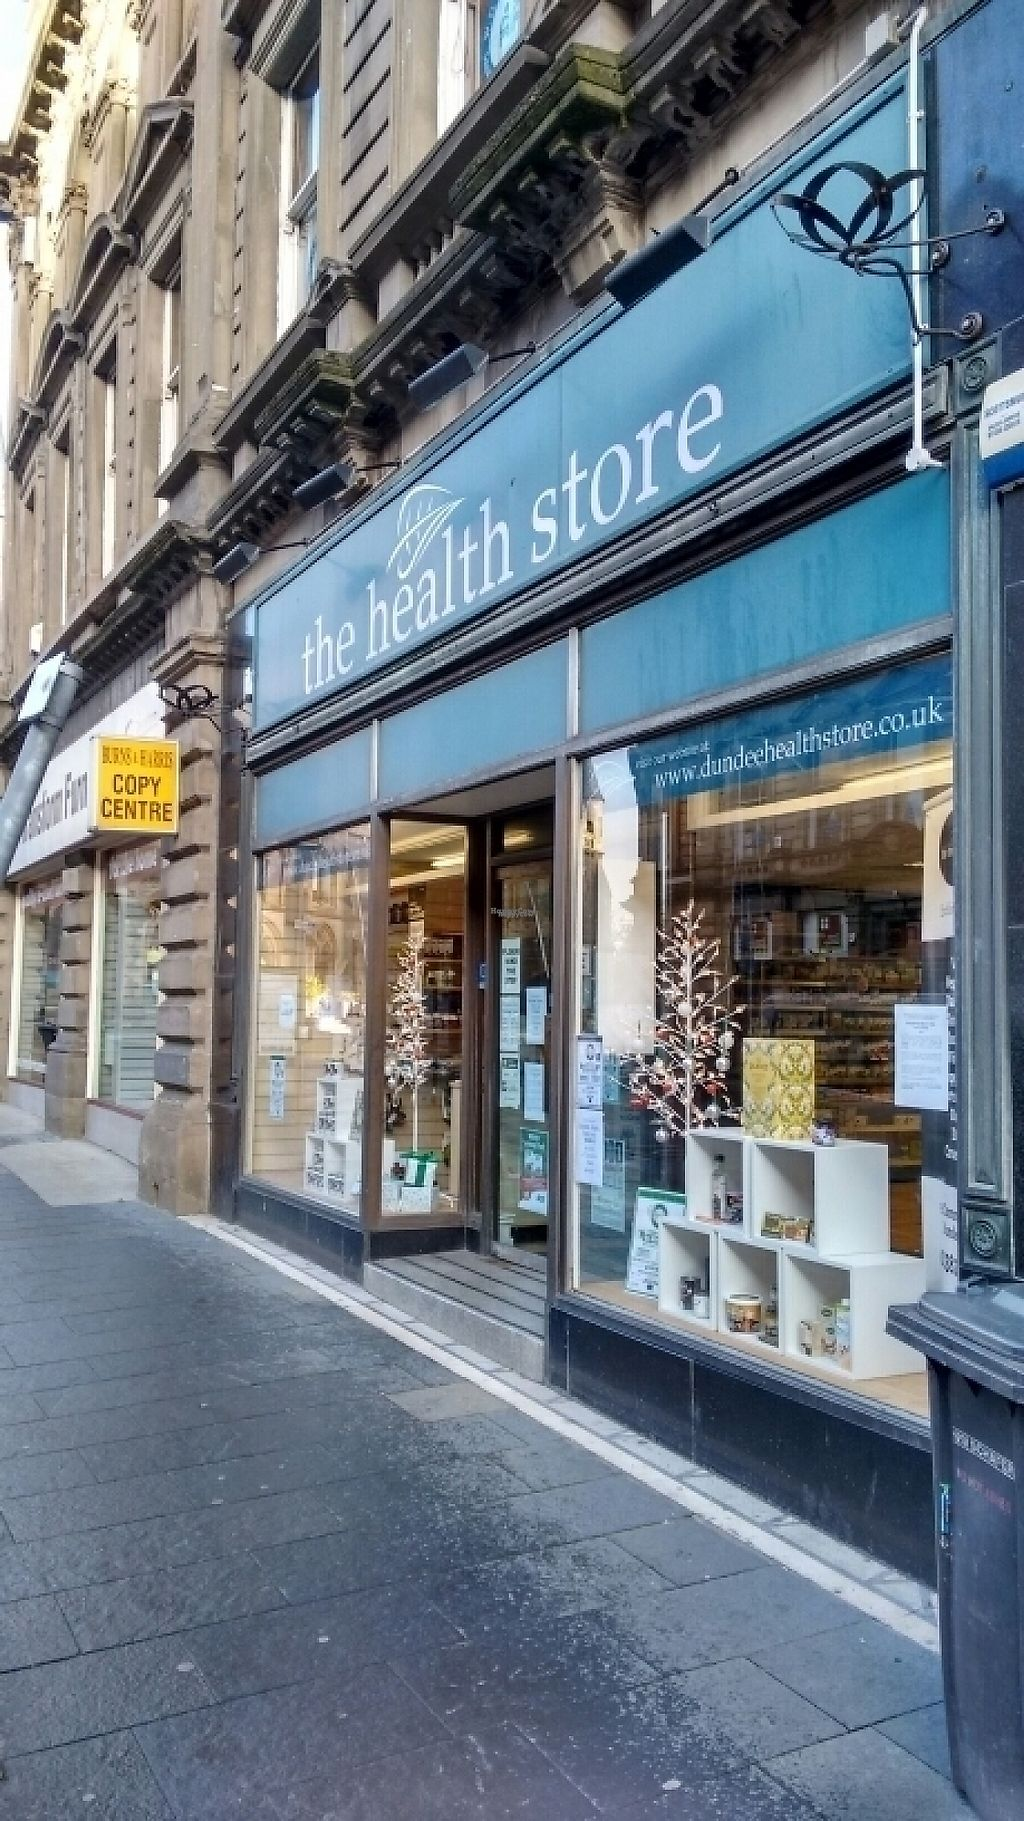 """Photo of The Health Store  by <a href=""""/members/profile/craigmc"""">craigmc</a> <br/>outside <br/> November 19, 2016  - <a href='/contact/abuse/image/32642/192094'>Report</a>"""